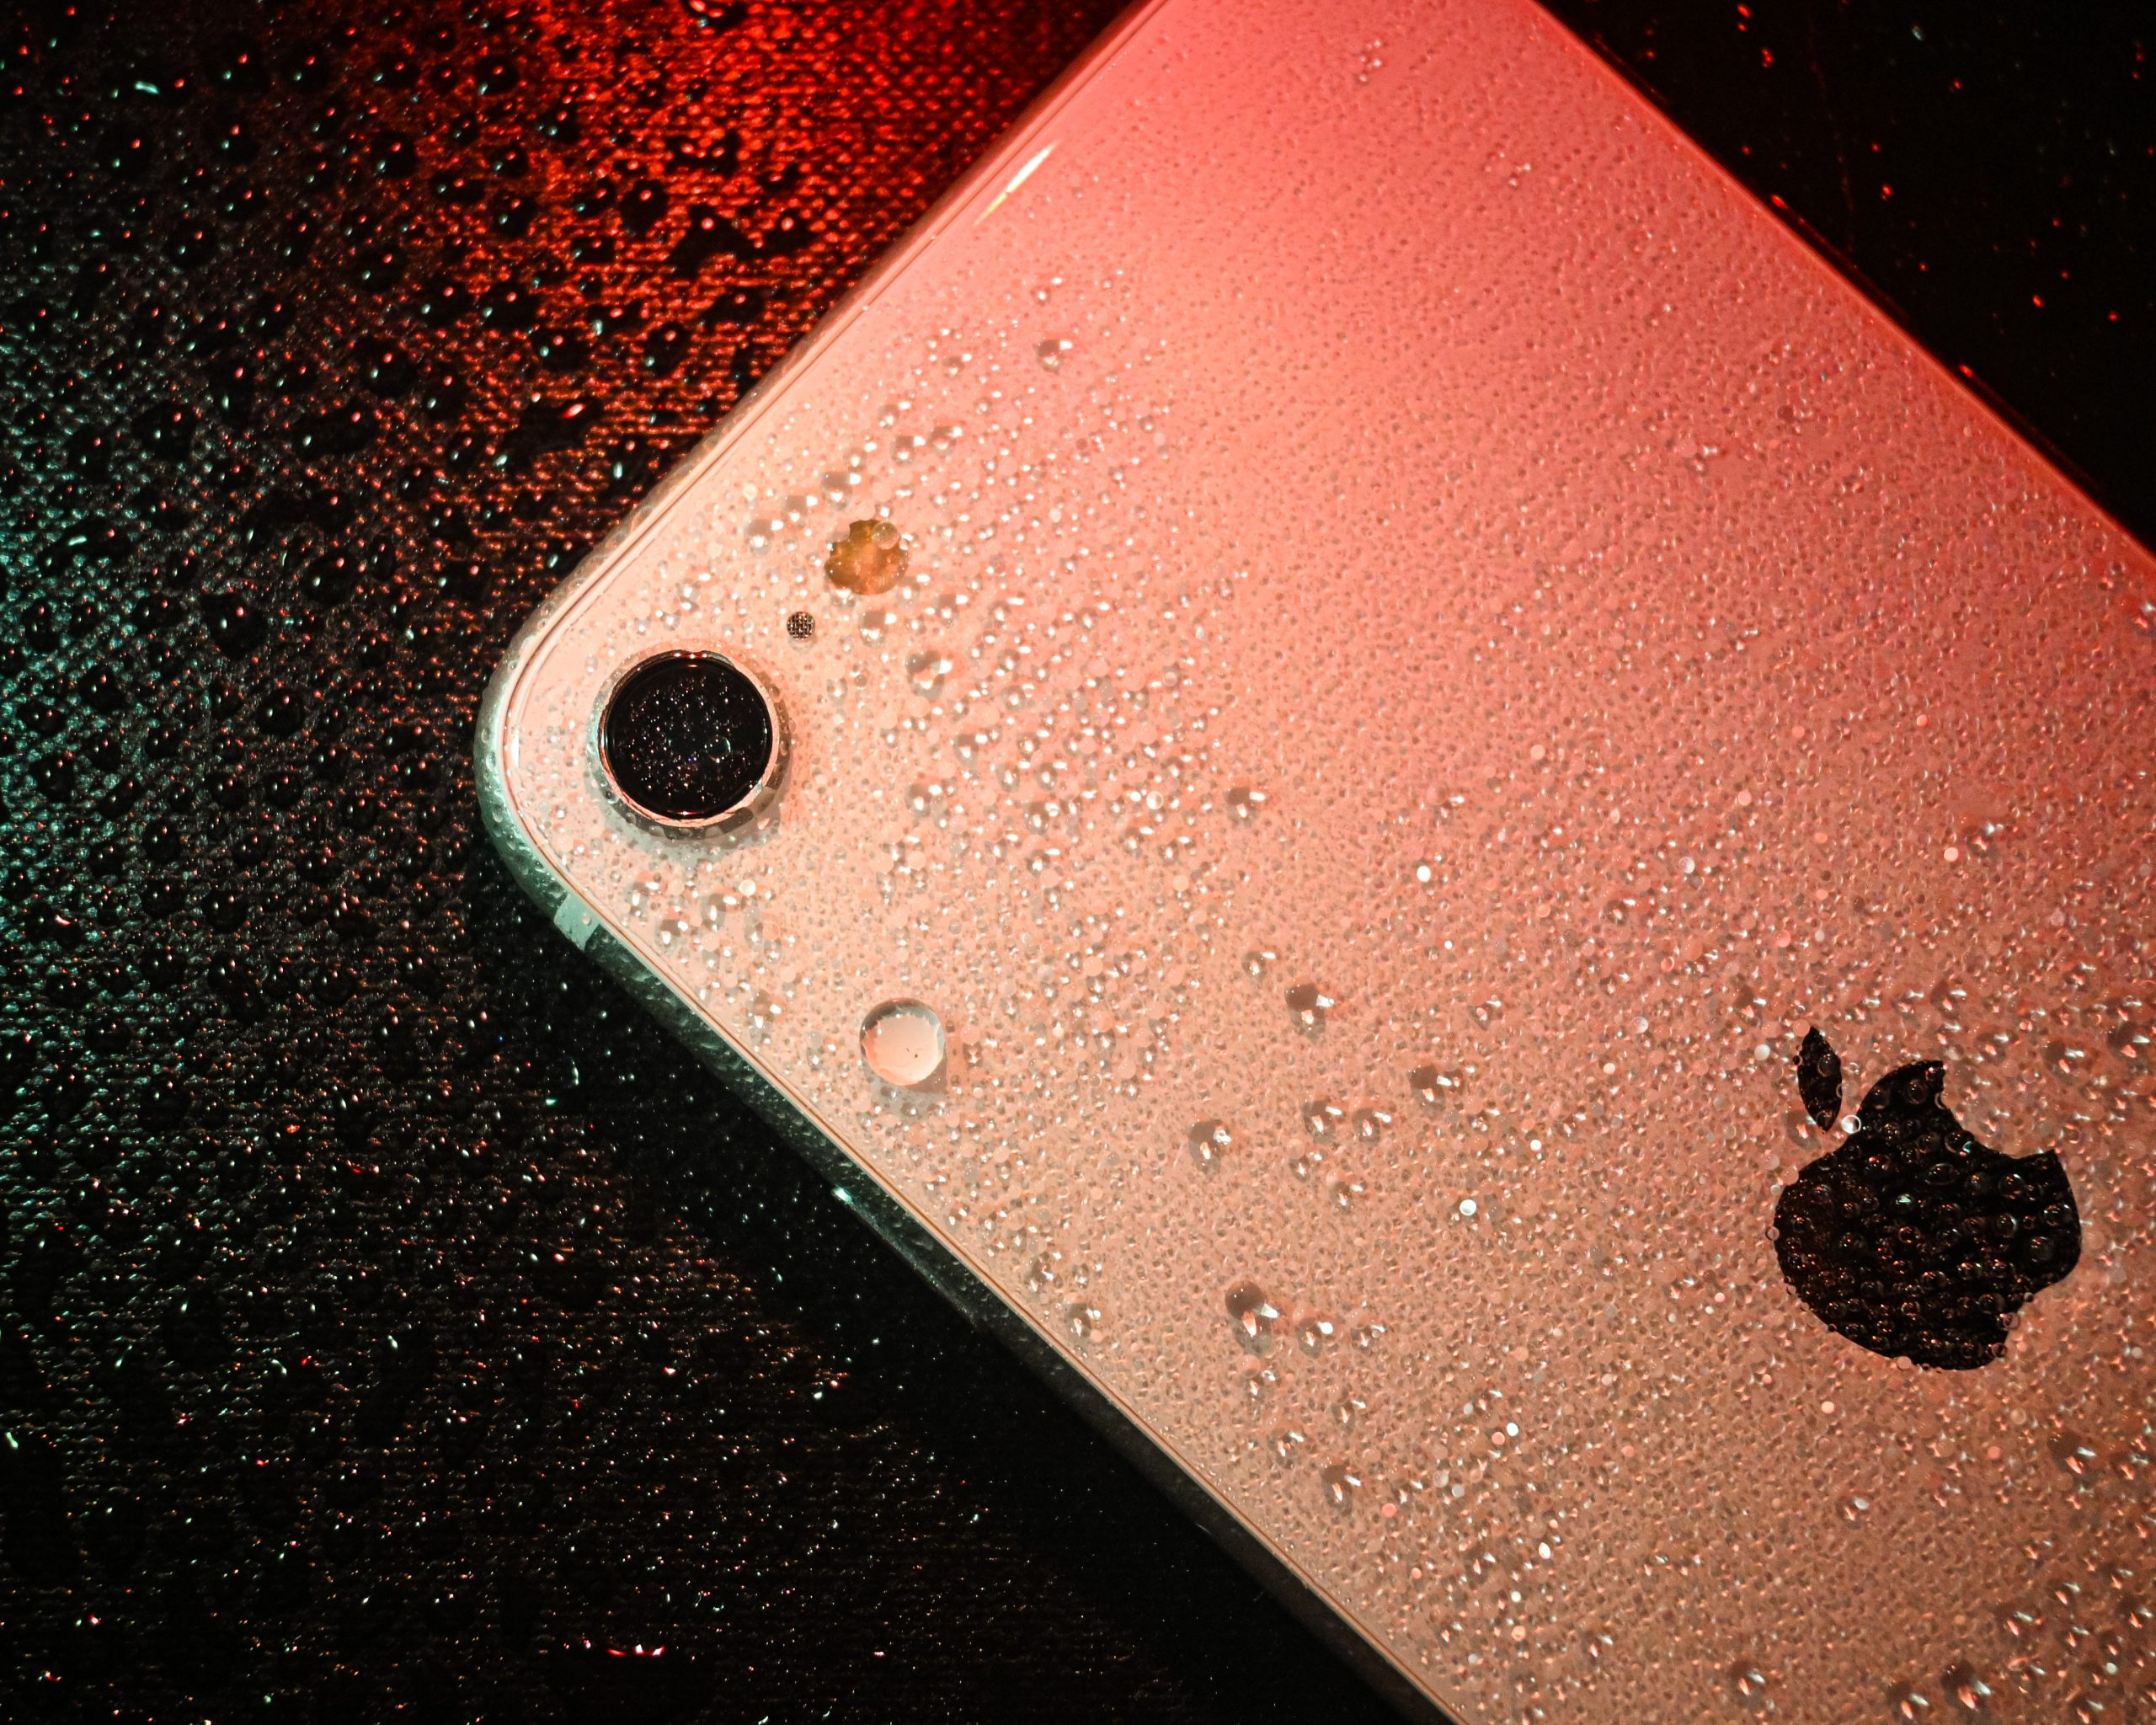 iPhone with a Water Drop